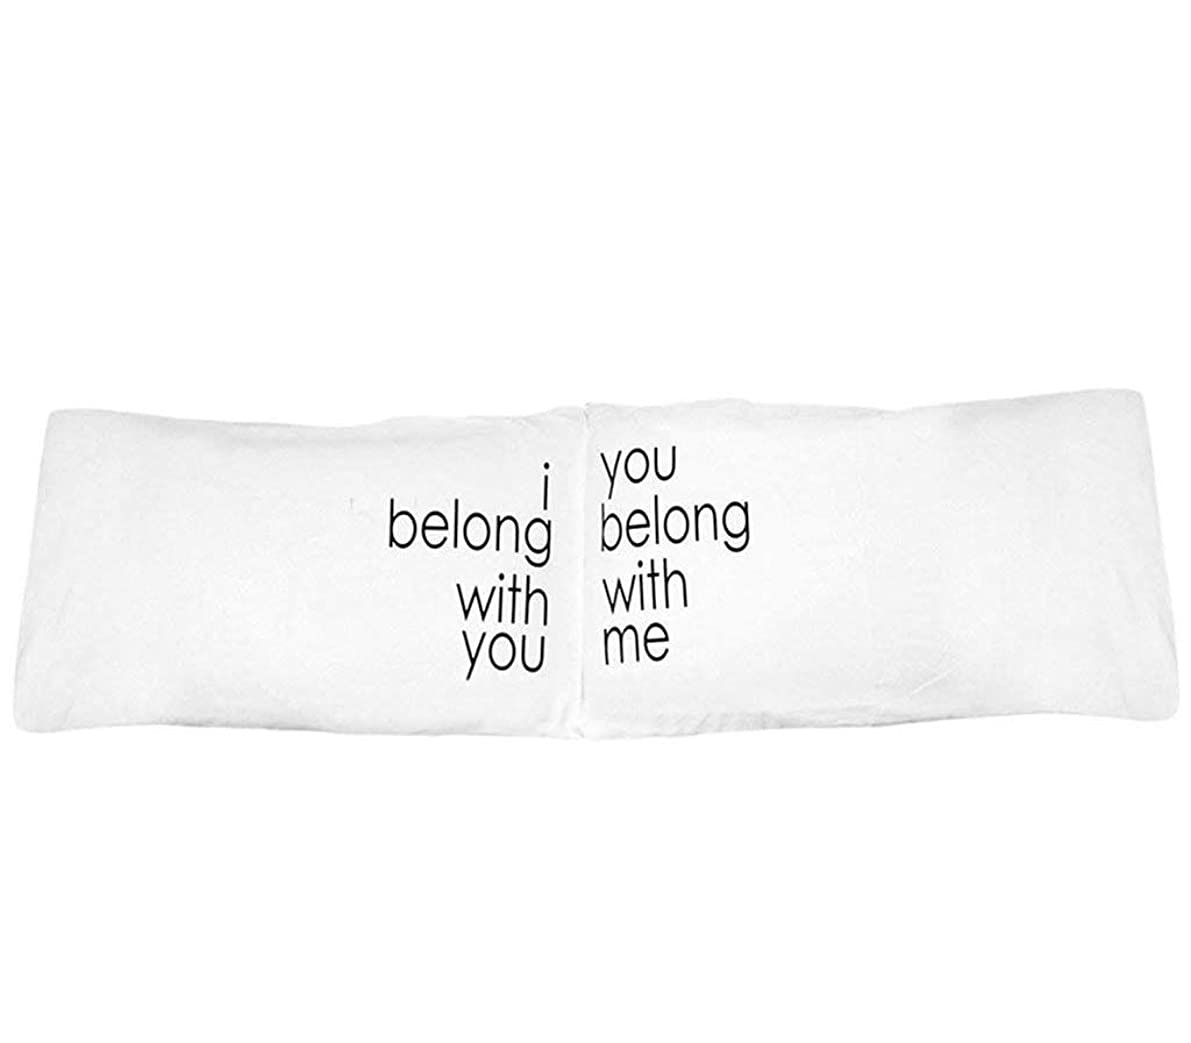 Oh, Susannah I Belong with You, You Belong with Me Couple Pillowcases Wedding Gifts for Couple, Him and Her Gifts (2 20x30 Inch Standard/Queen Pillowcases)